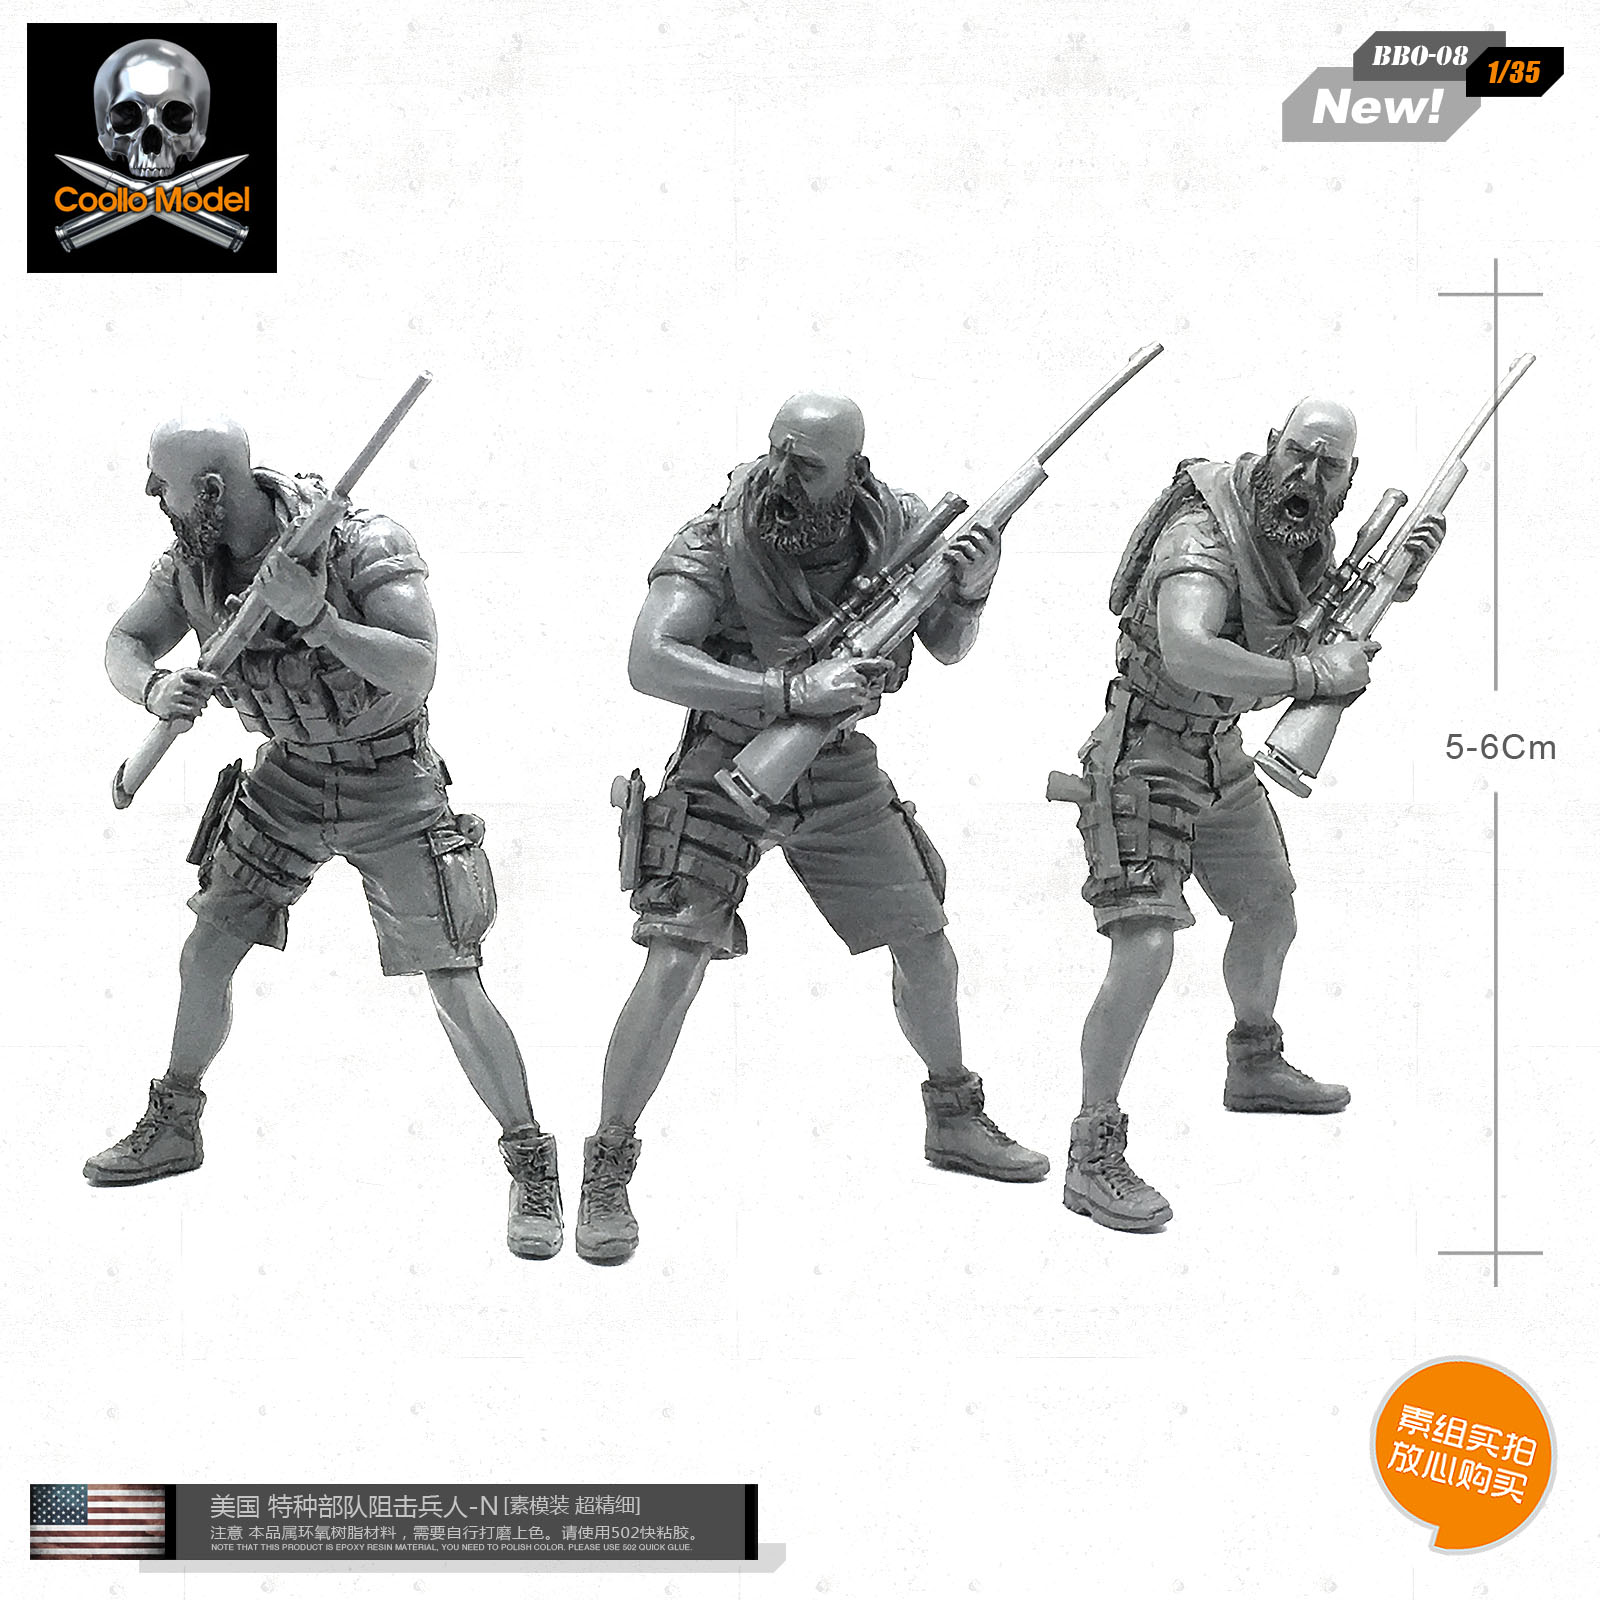 1/35 U.s. Special Forces -n Resin Soldier Model Bbo-08 A Wide Selection Of Colours And Designs